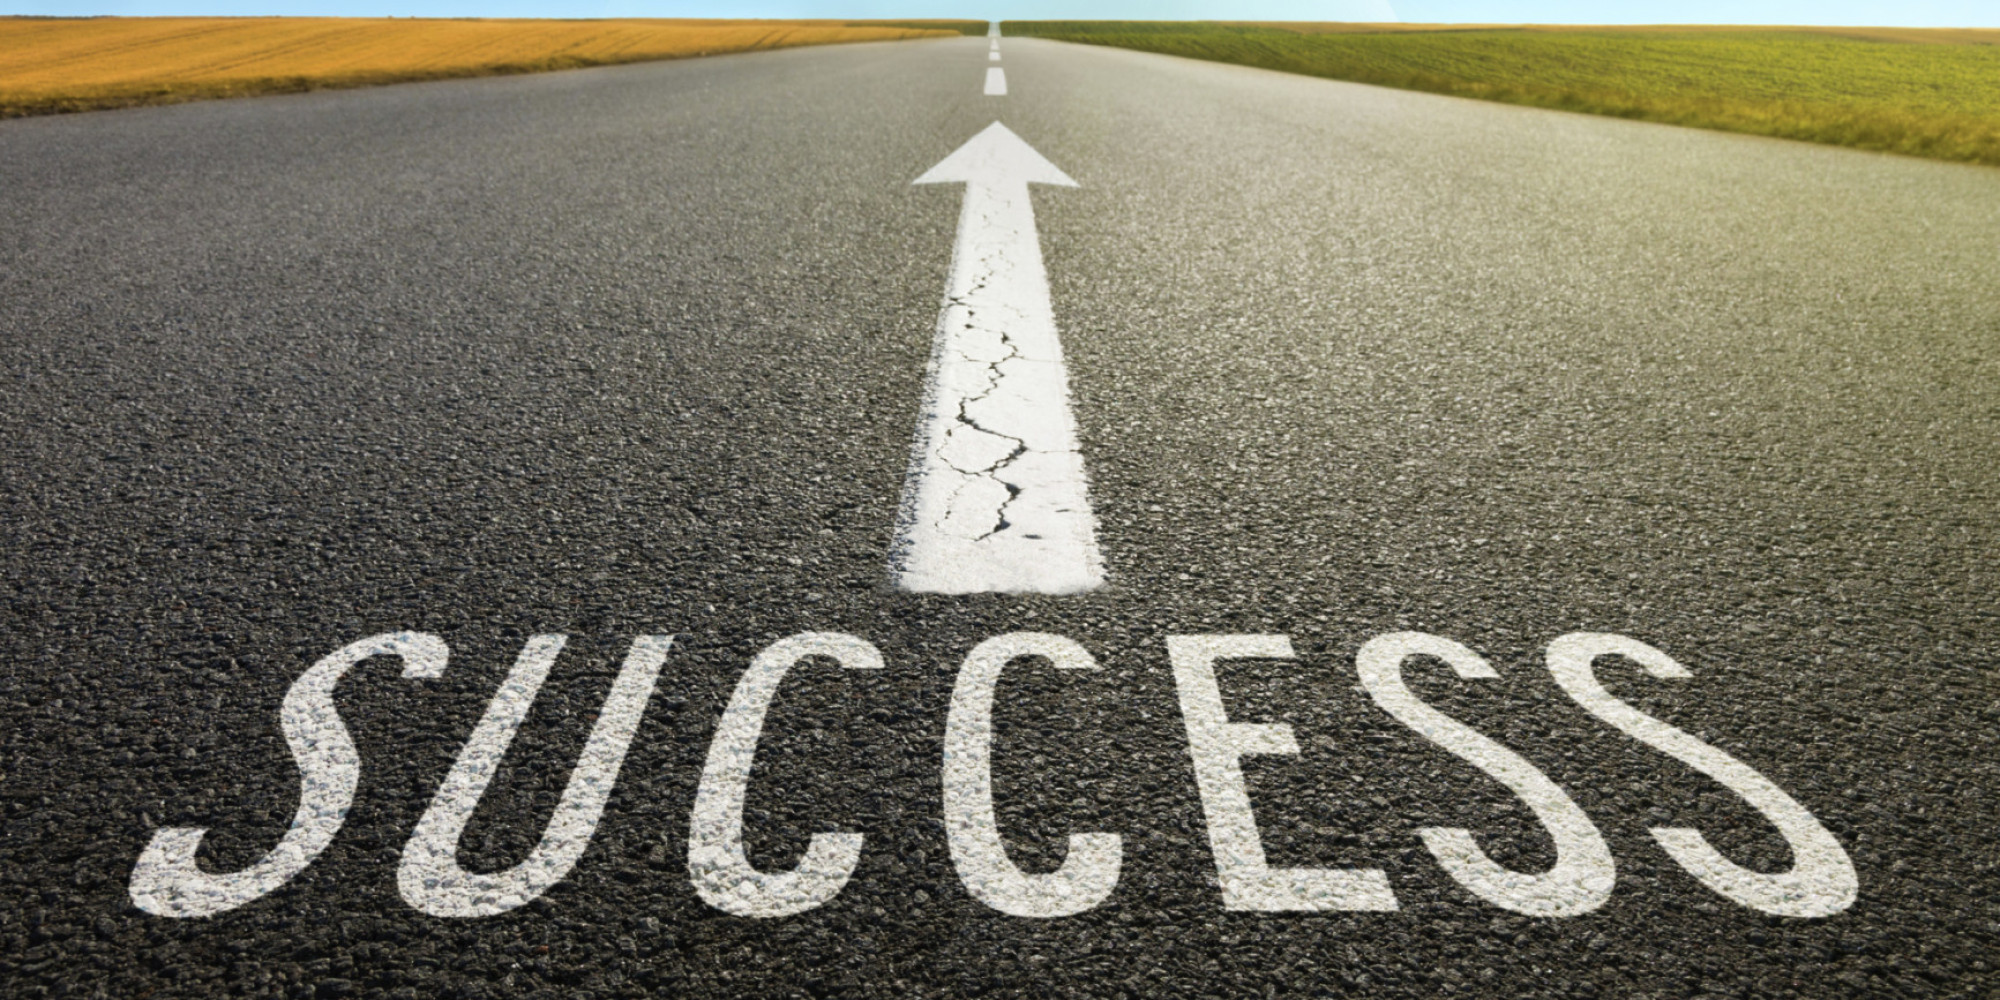 Picture of Success from http://roryvaden.com/blog/why-you-need-unrealistic-goals/